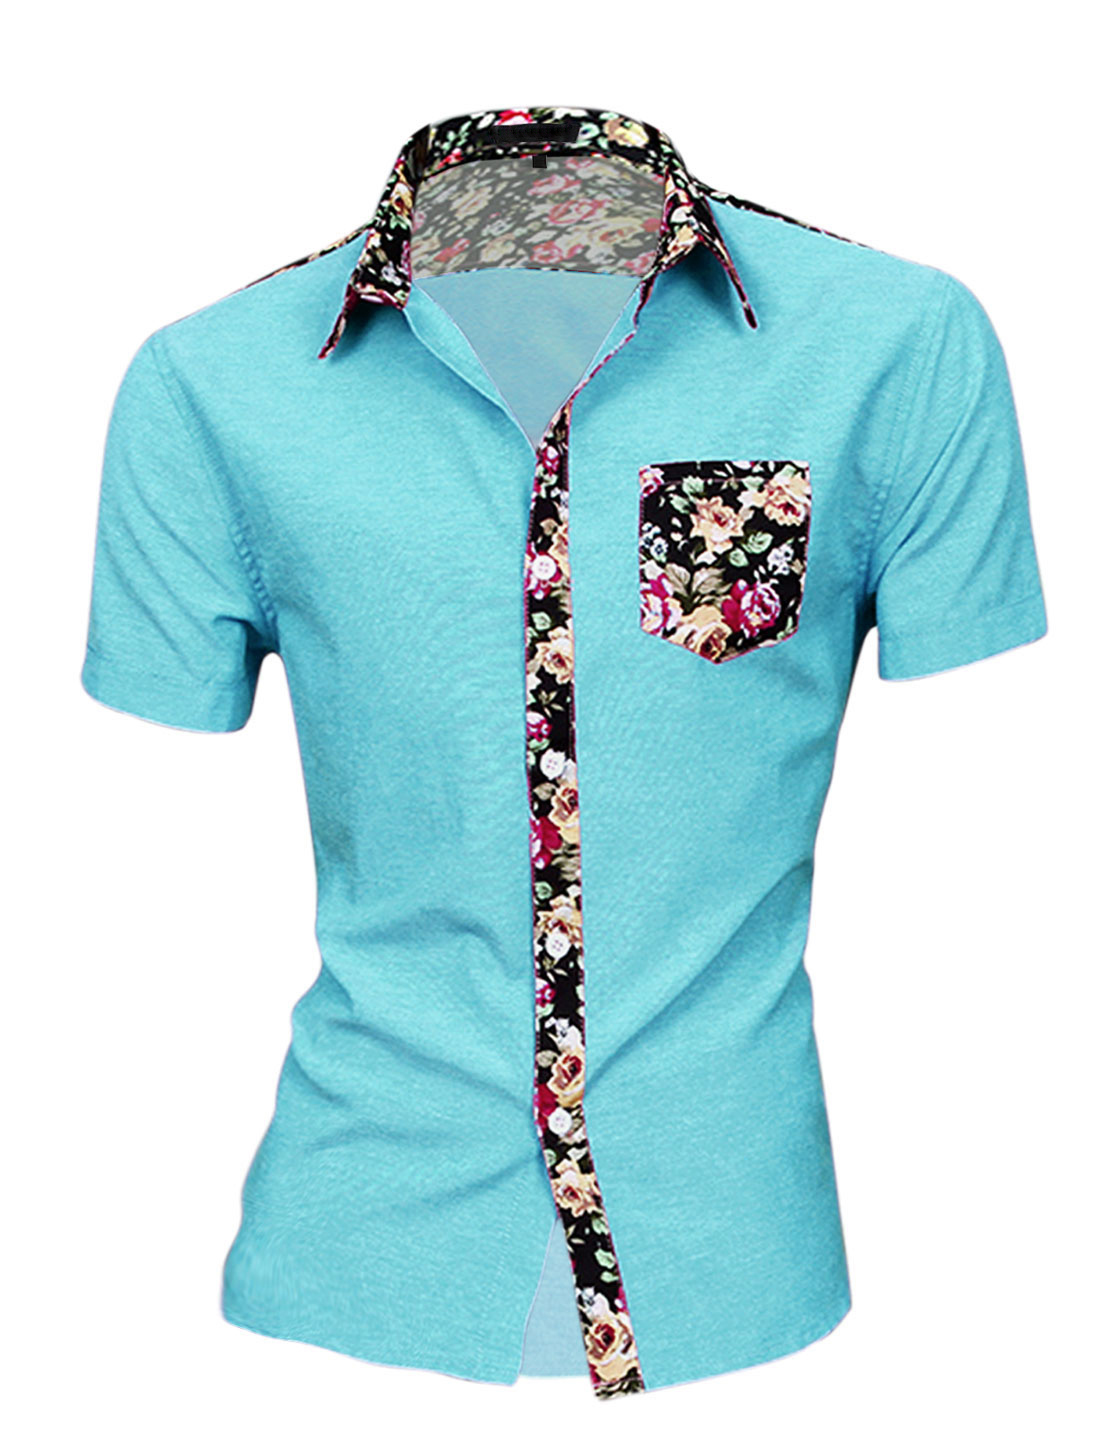 Men Short Sleeves Floral Prints Button-Front Shirt Sky Blue L